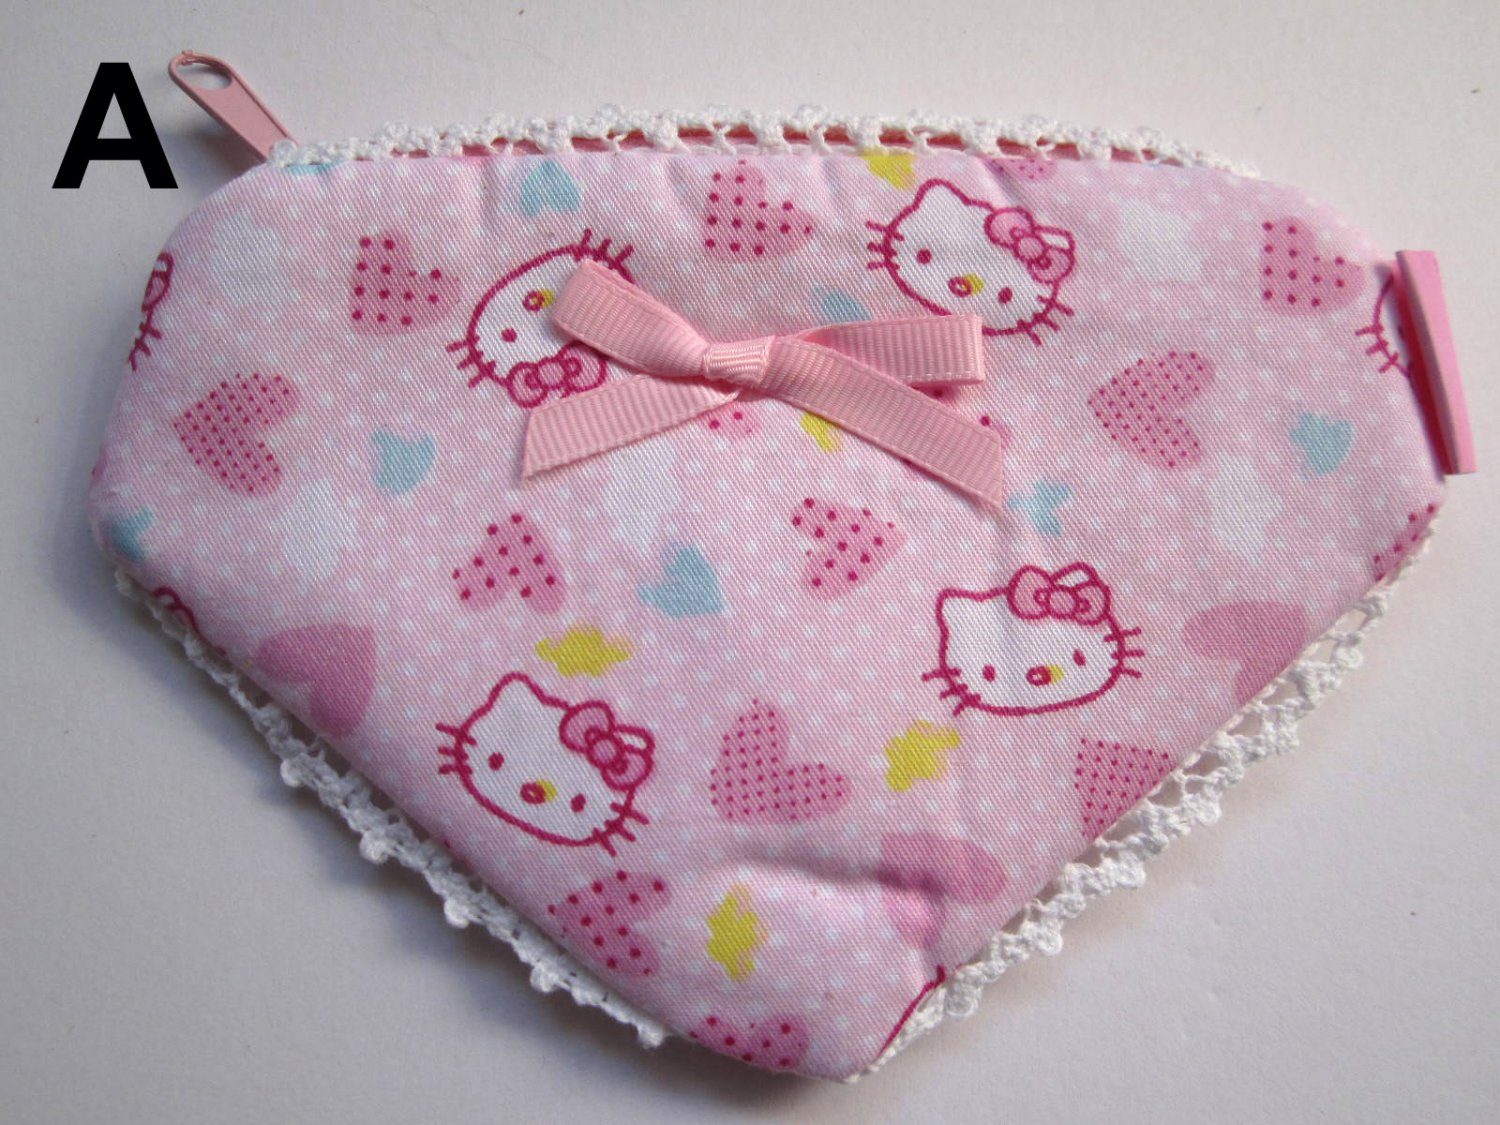 CUTE PANTY POUCH - A